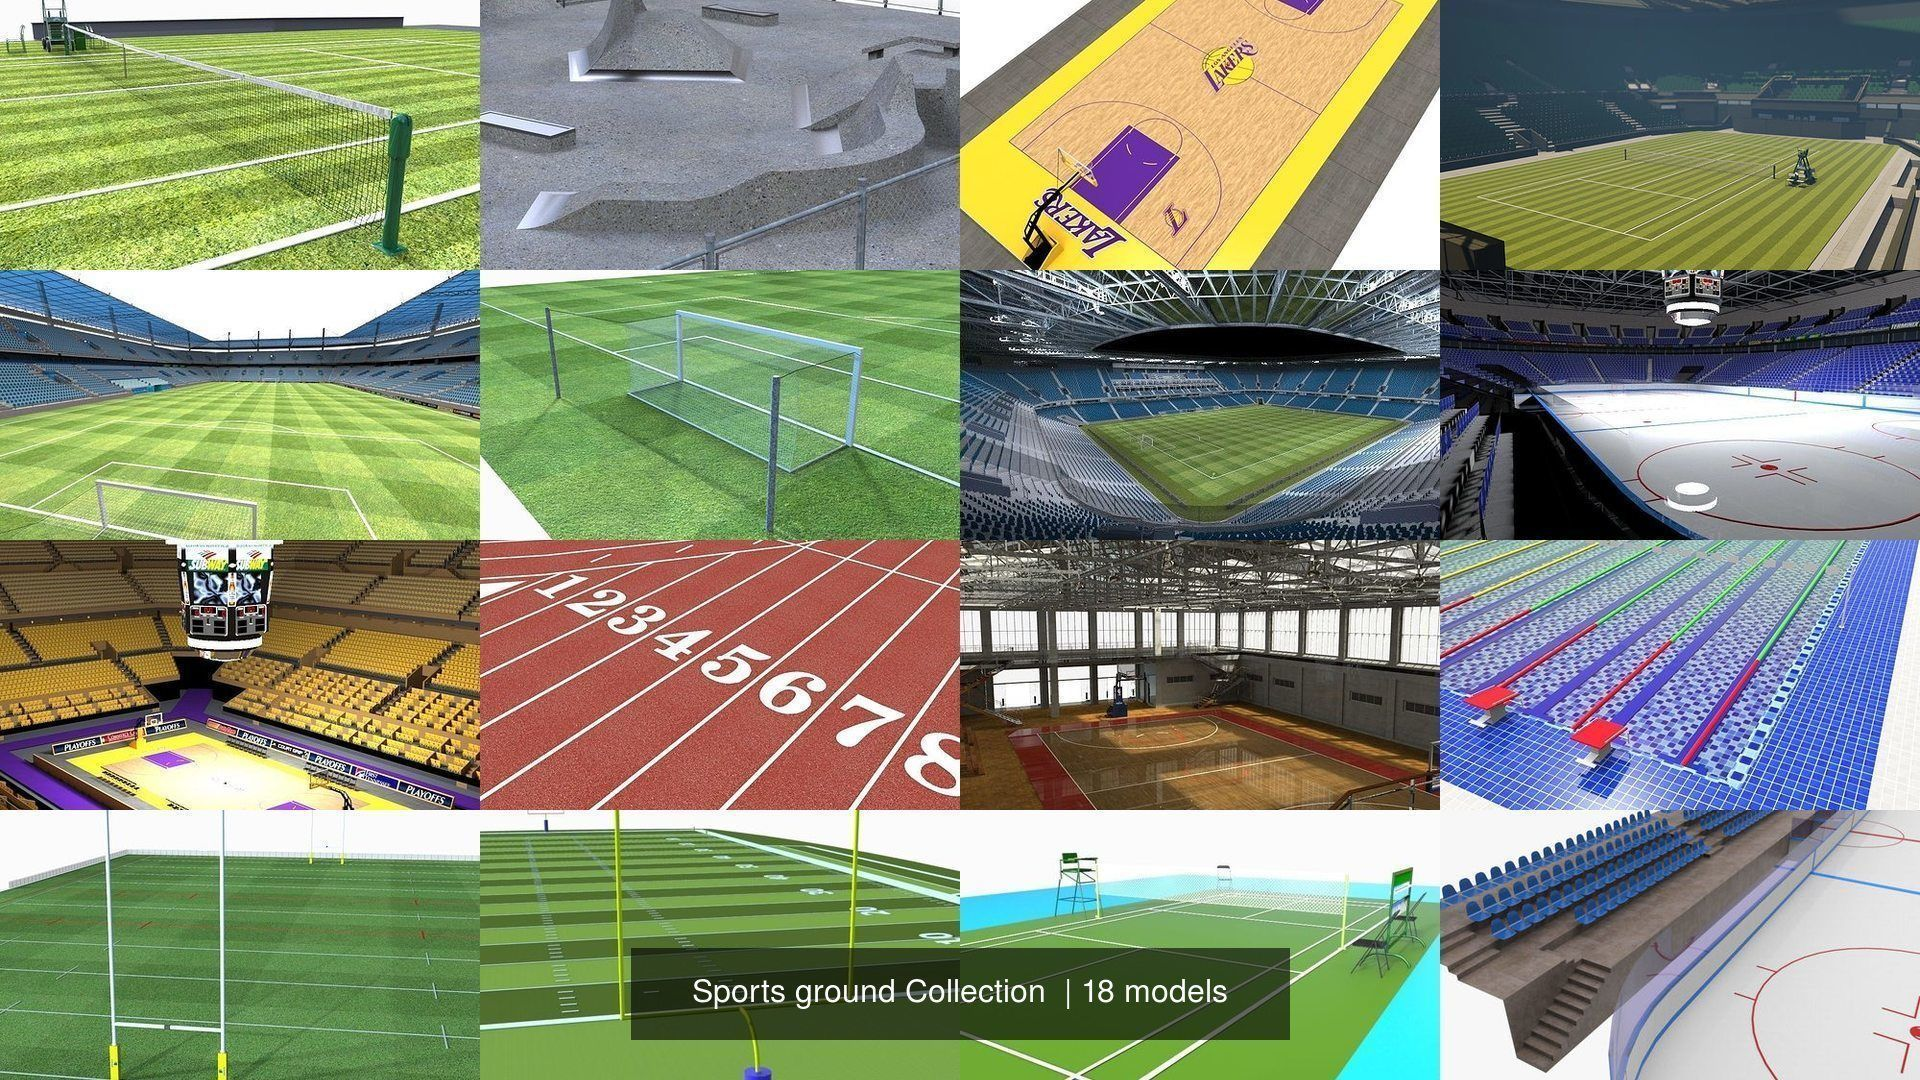 Sports ground Collection